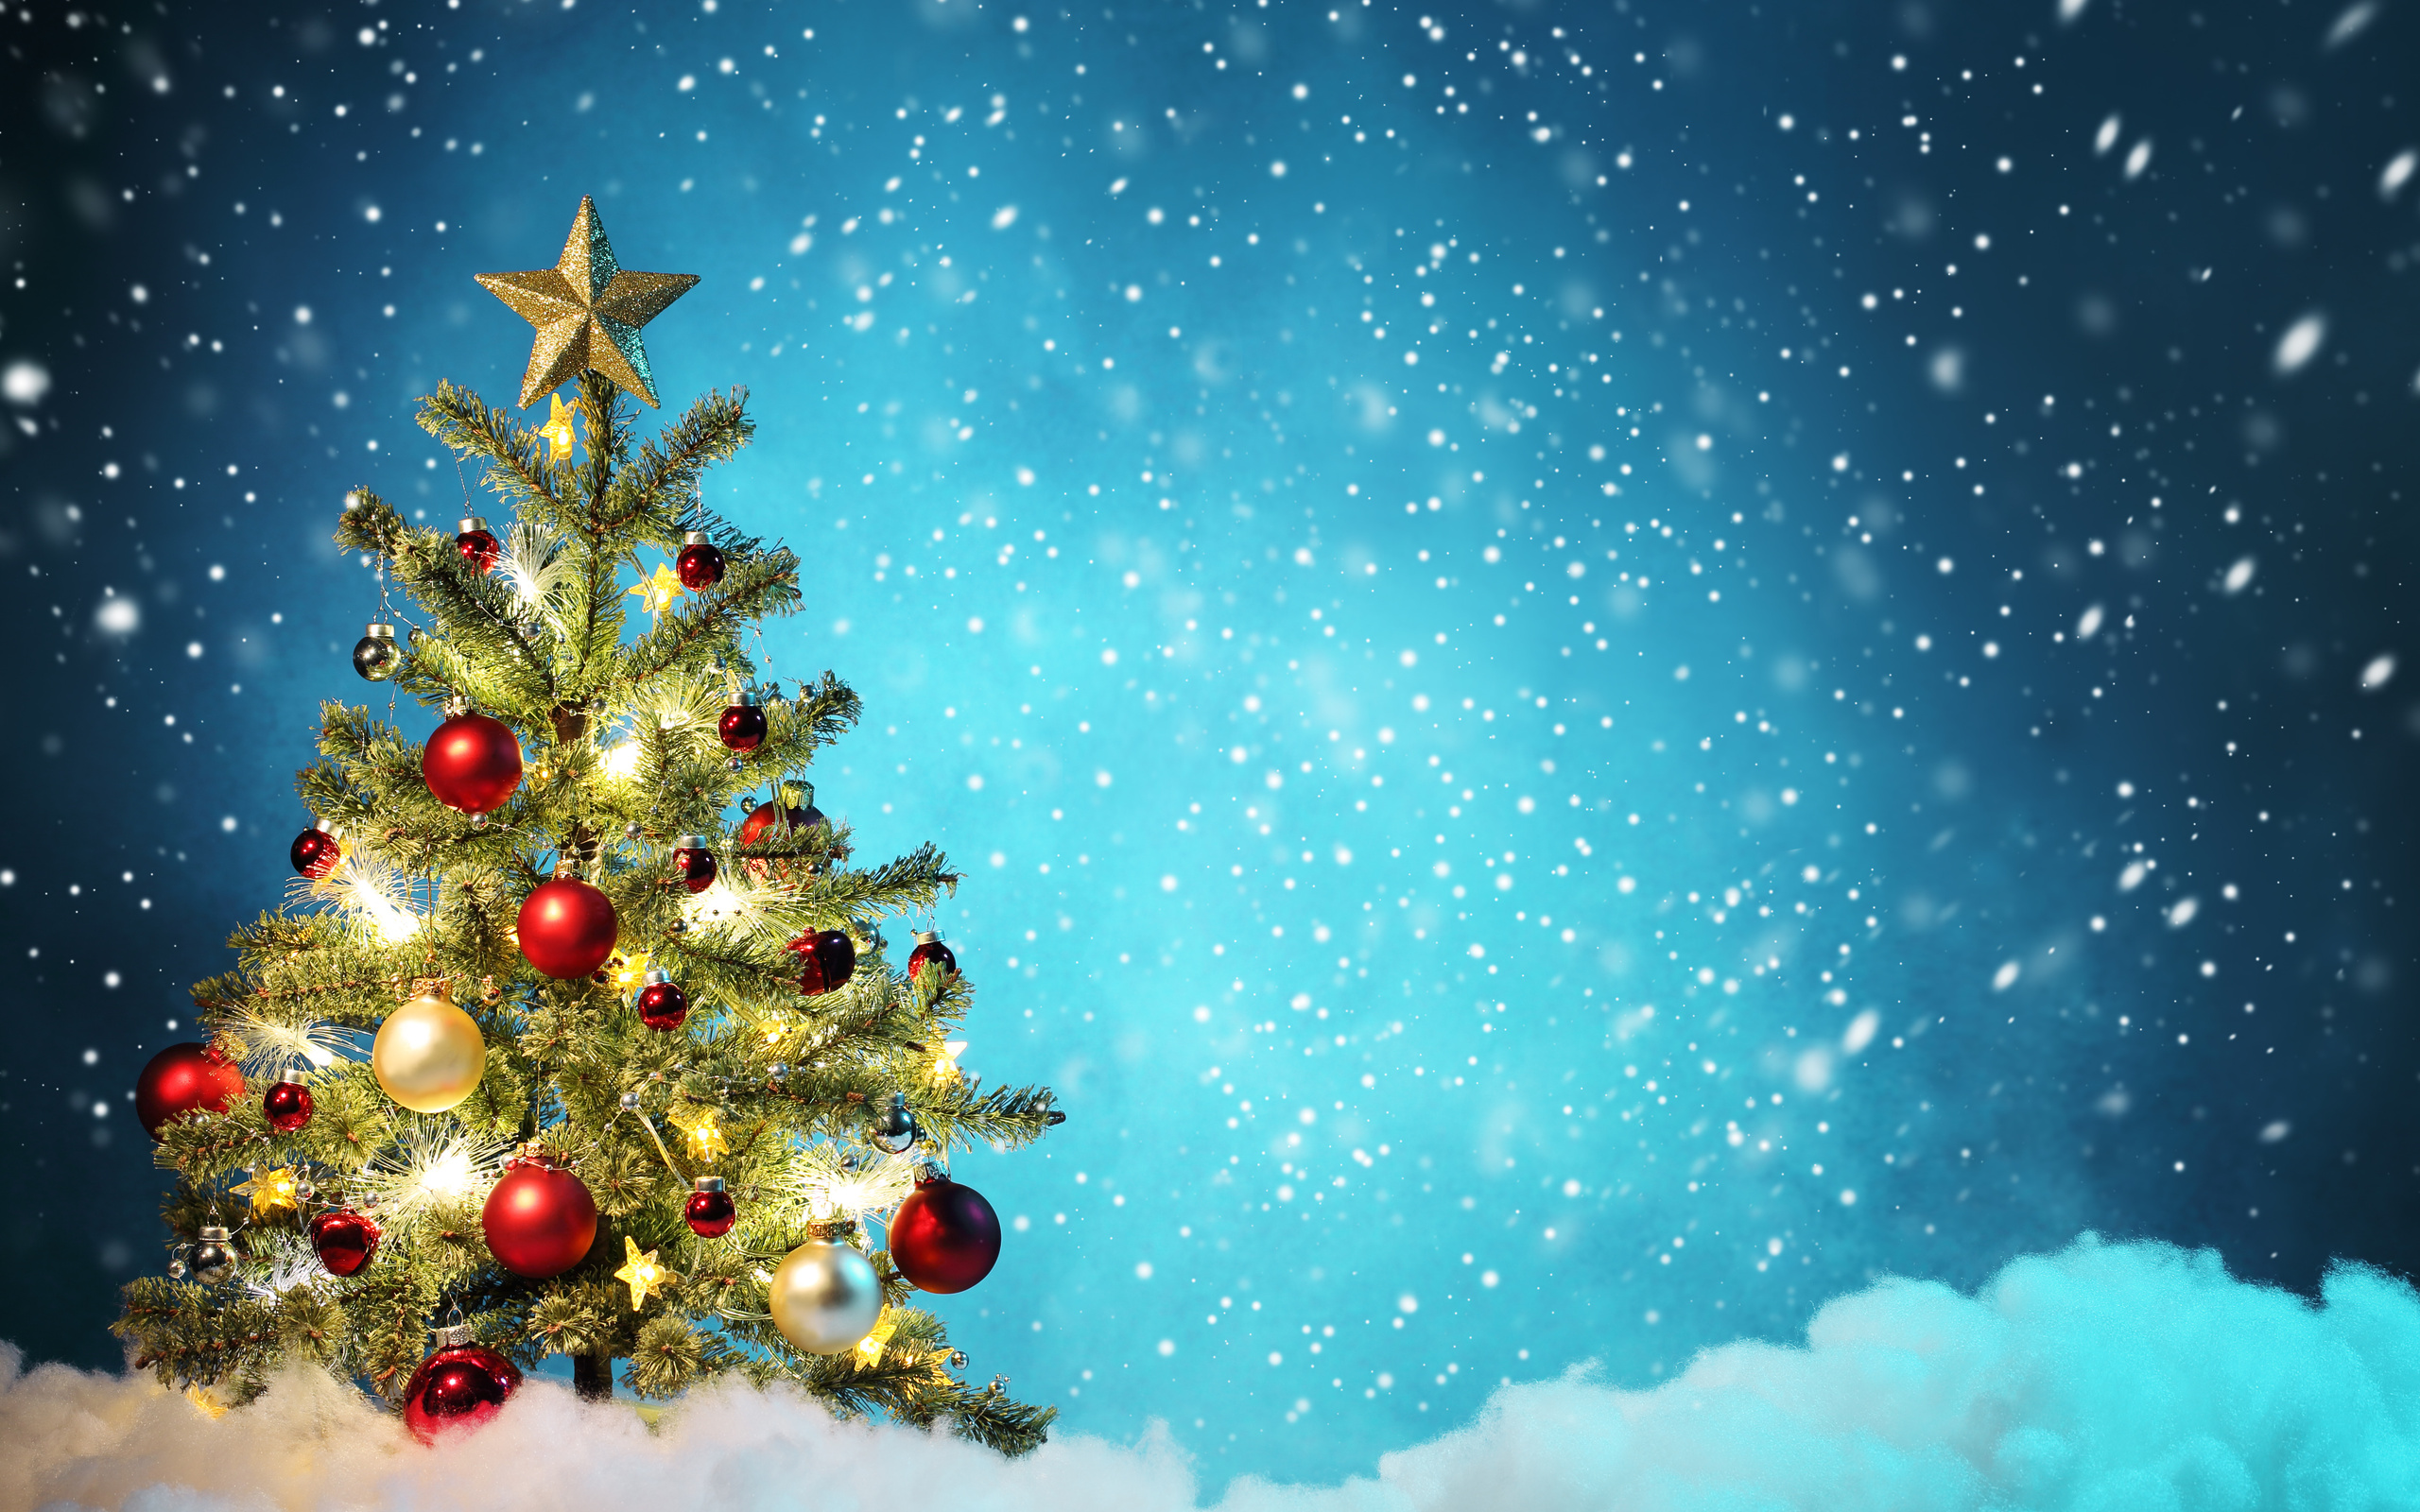 christmas tree new year wallpaper 2560x1600 174906 wallpaperup